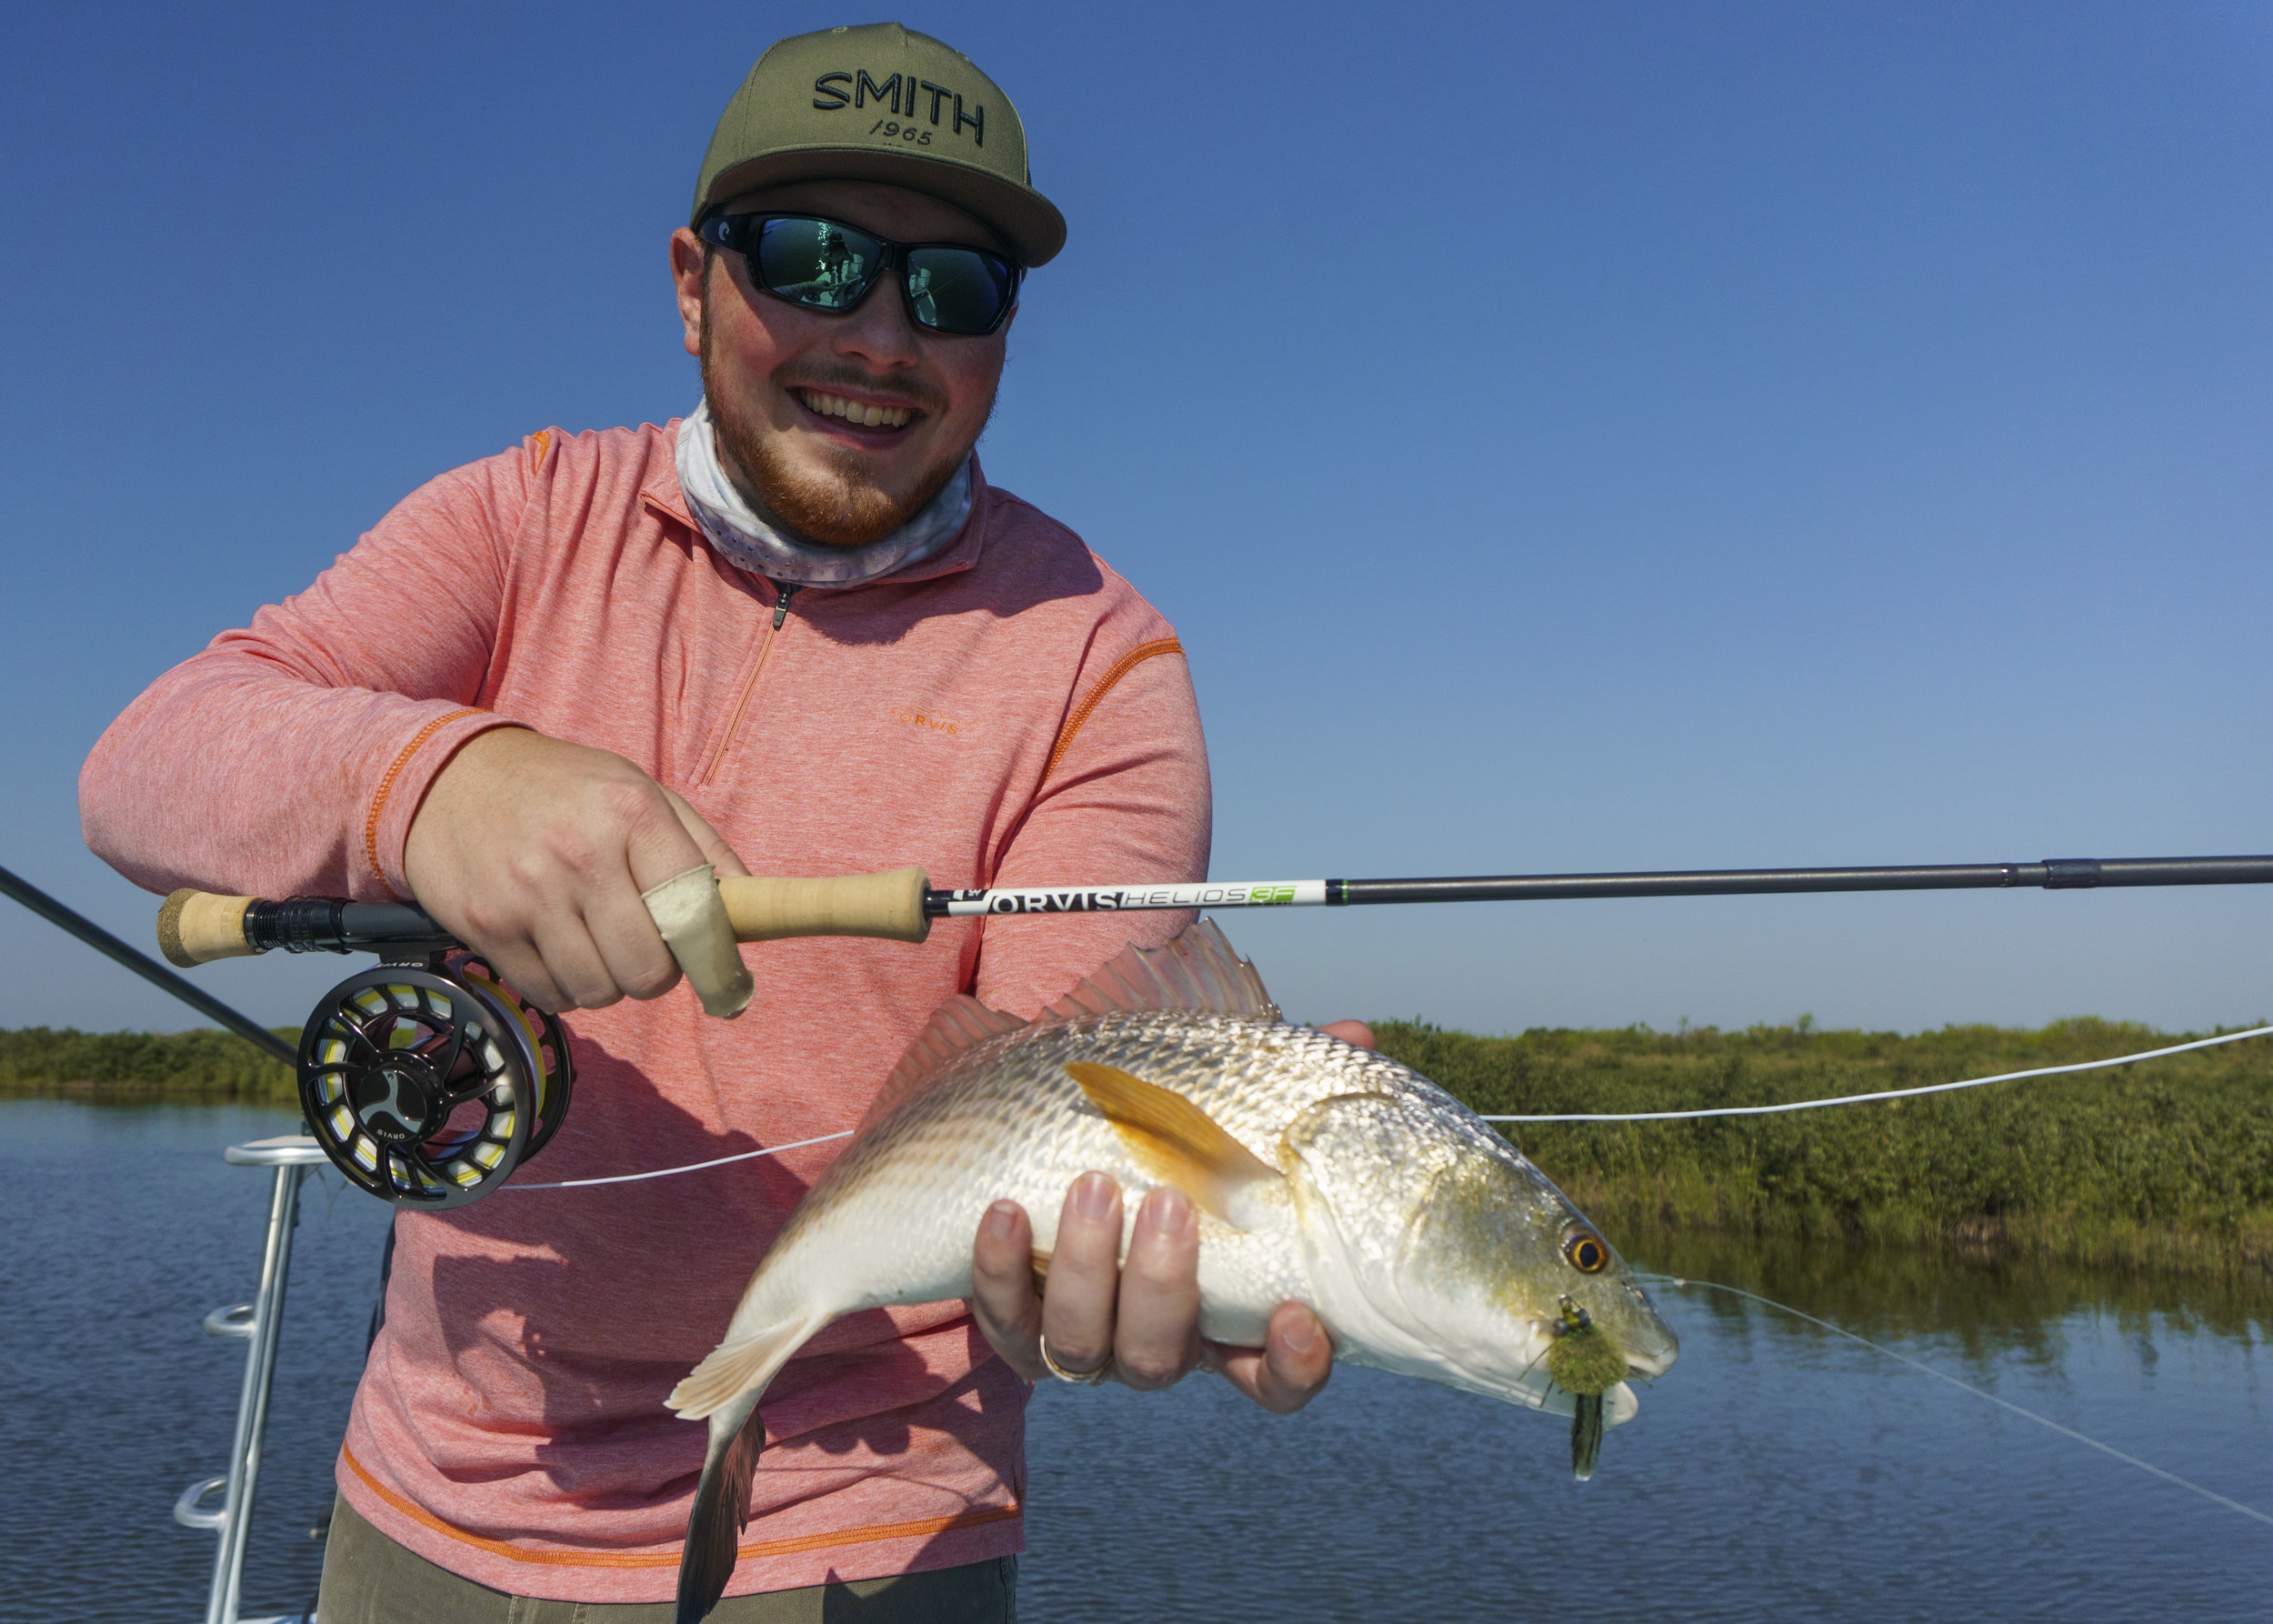 Landon with a Redfish